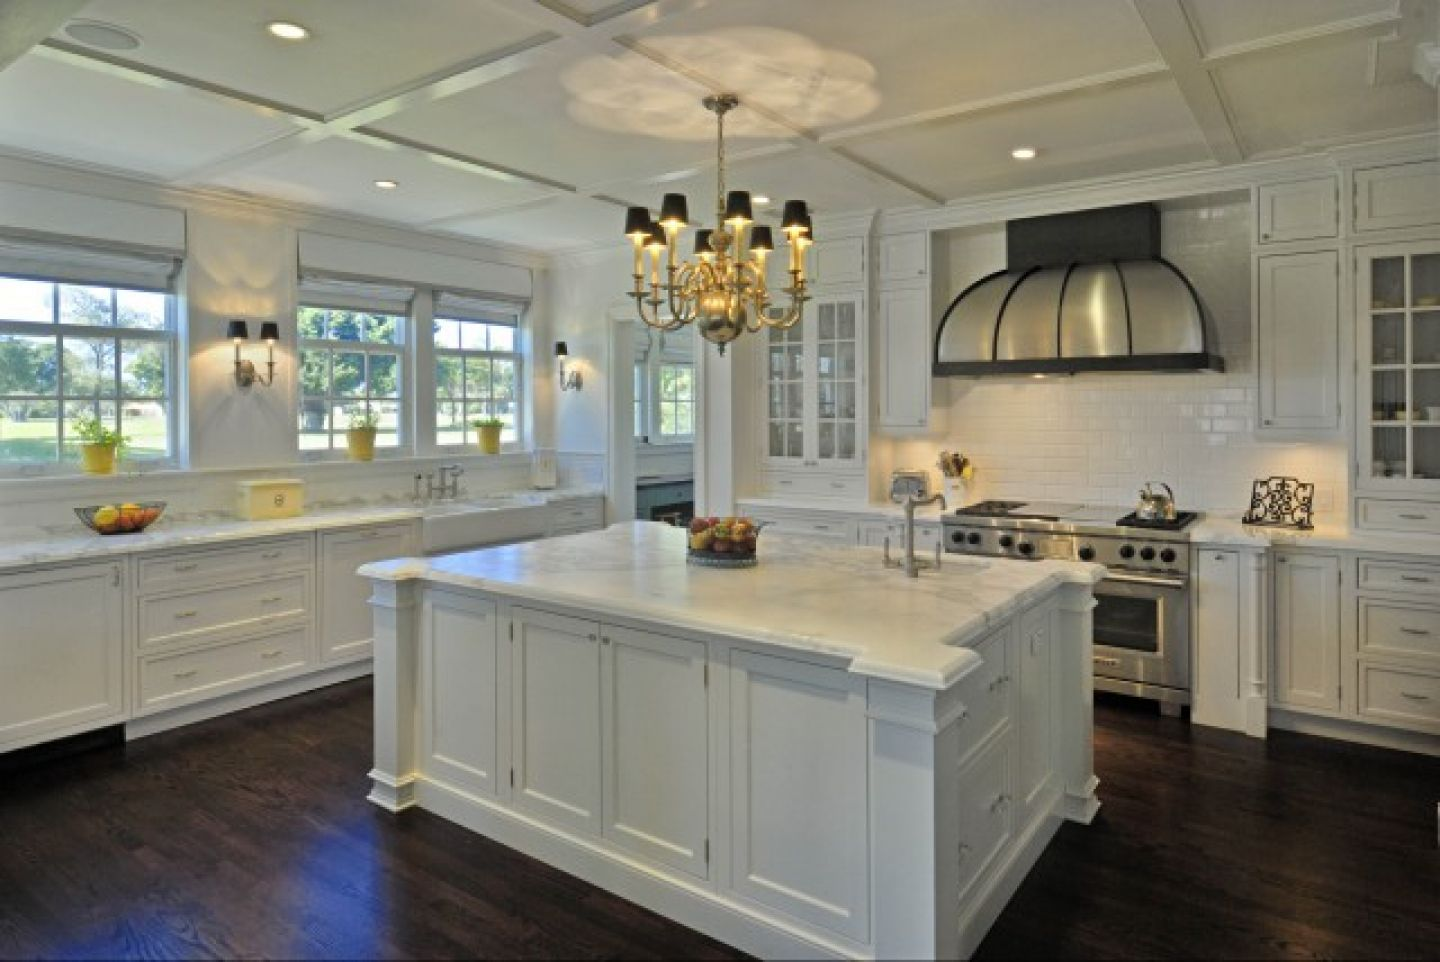 They Are Regularly Used To Redo Countertops Furniture Sees Its Fair Share  Of Use Laminate Kitchen Countertops Is Usually Based On Your Eating  Countertops ...